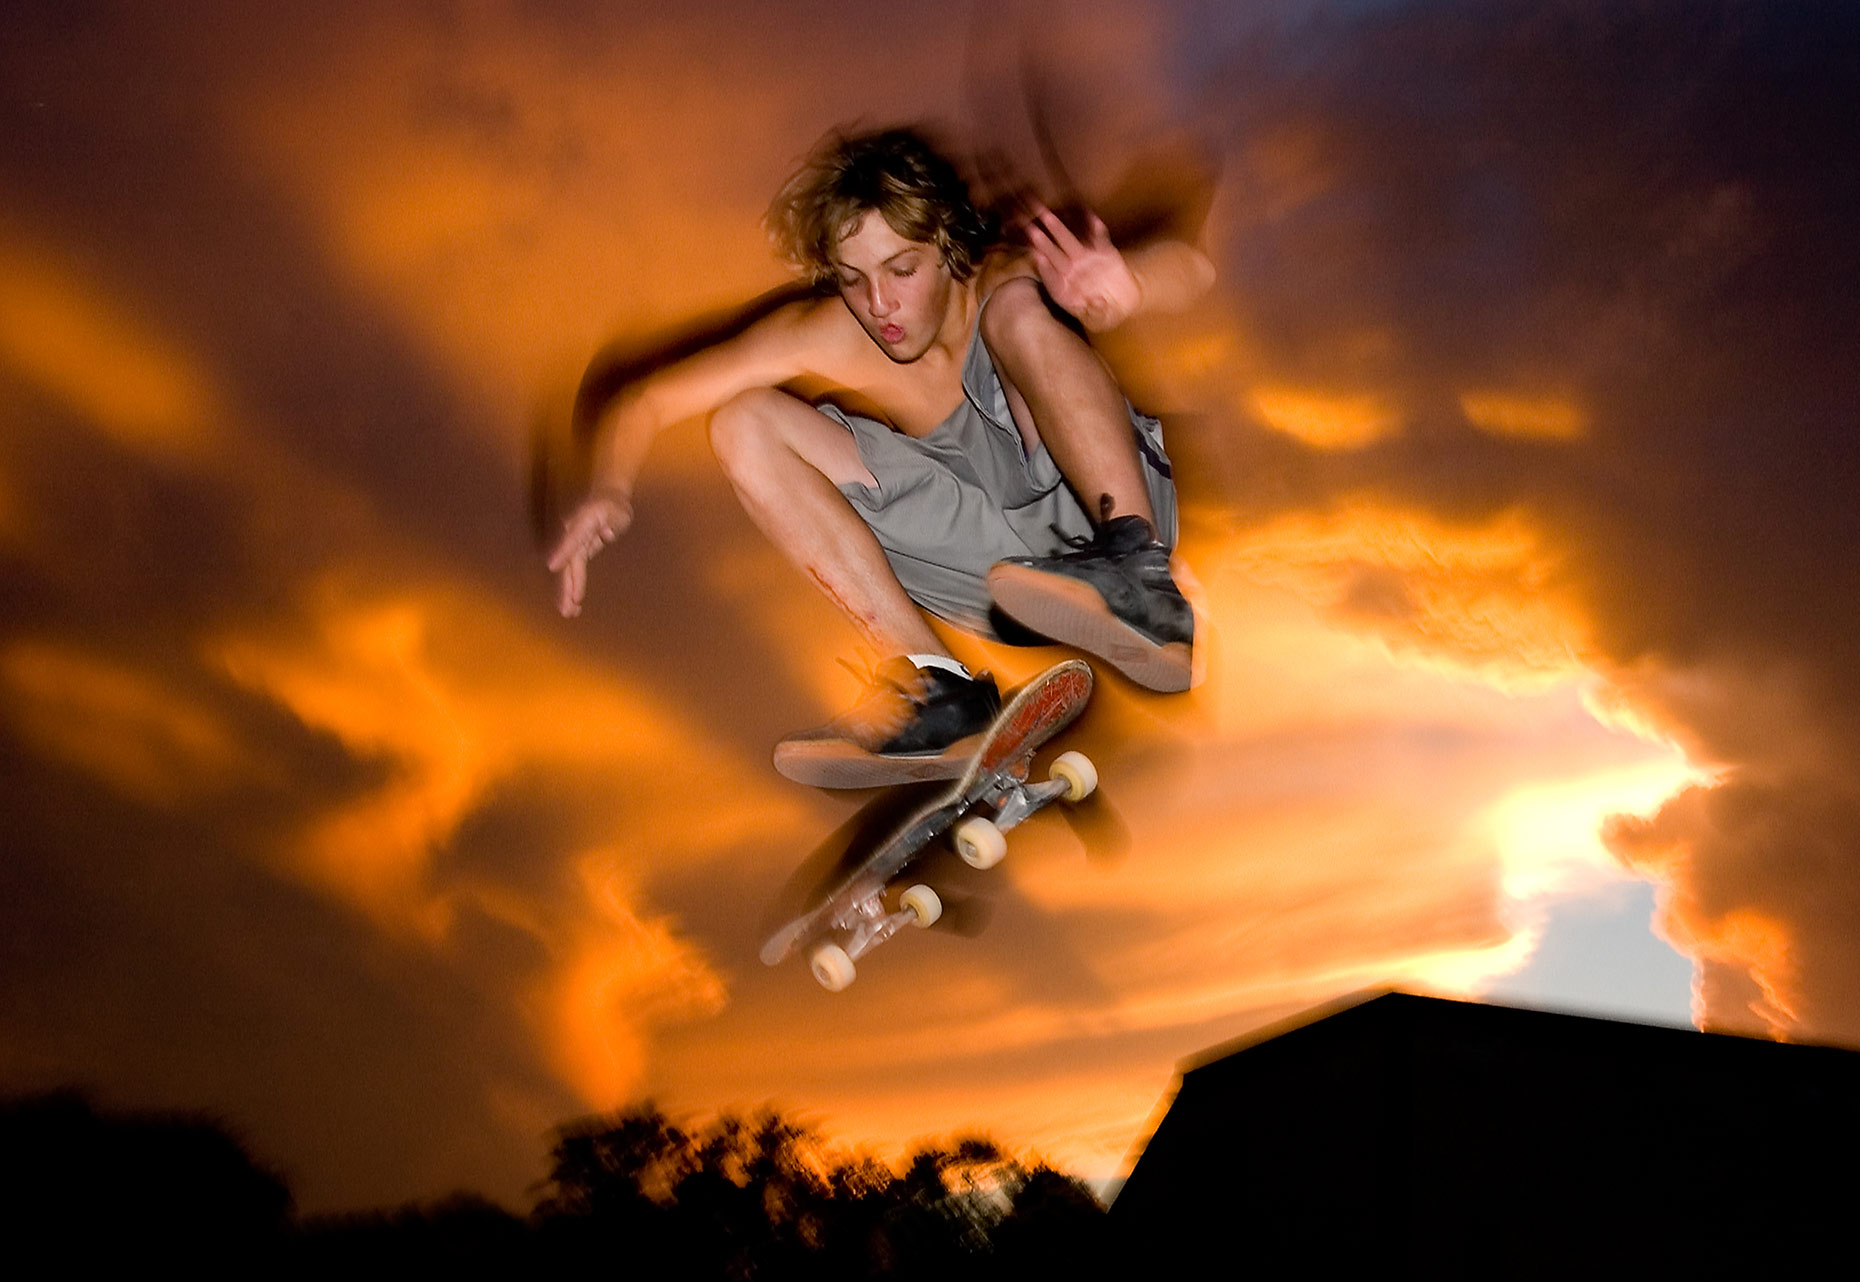 A skateboarder photographed by Fargo editorial photographer Dan Koeck